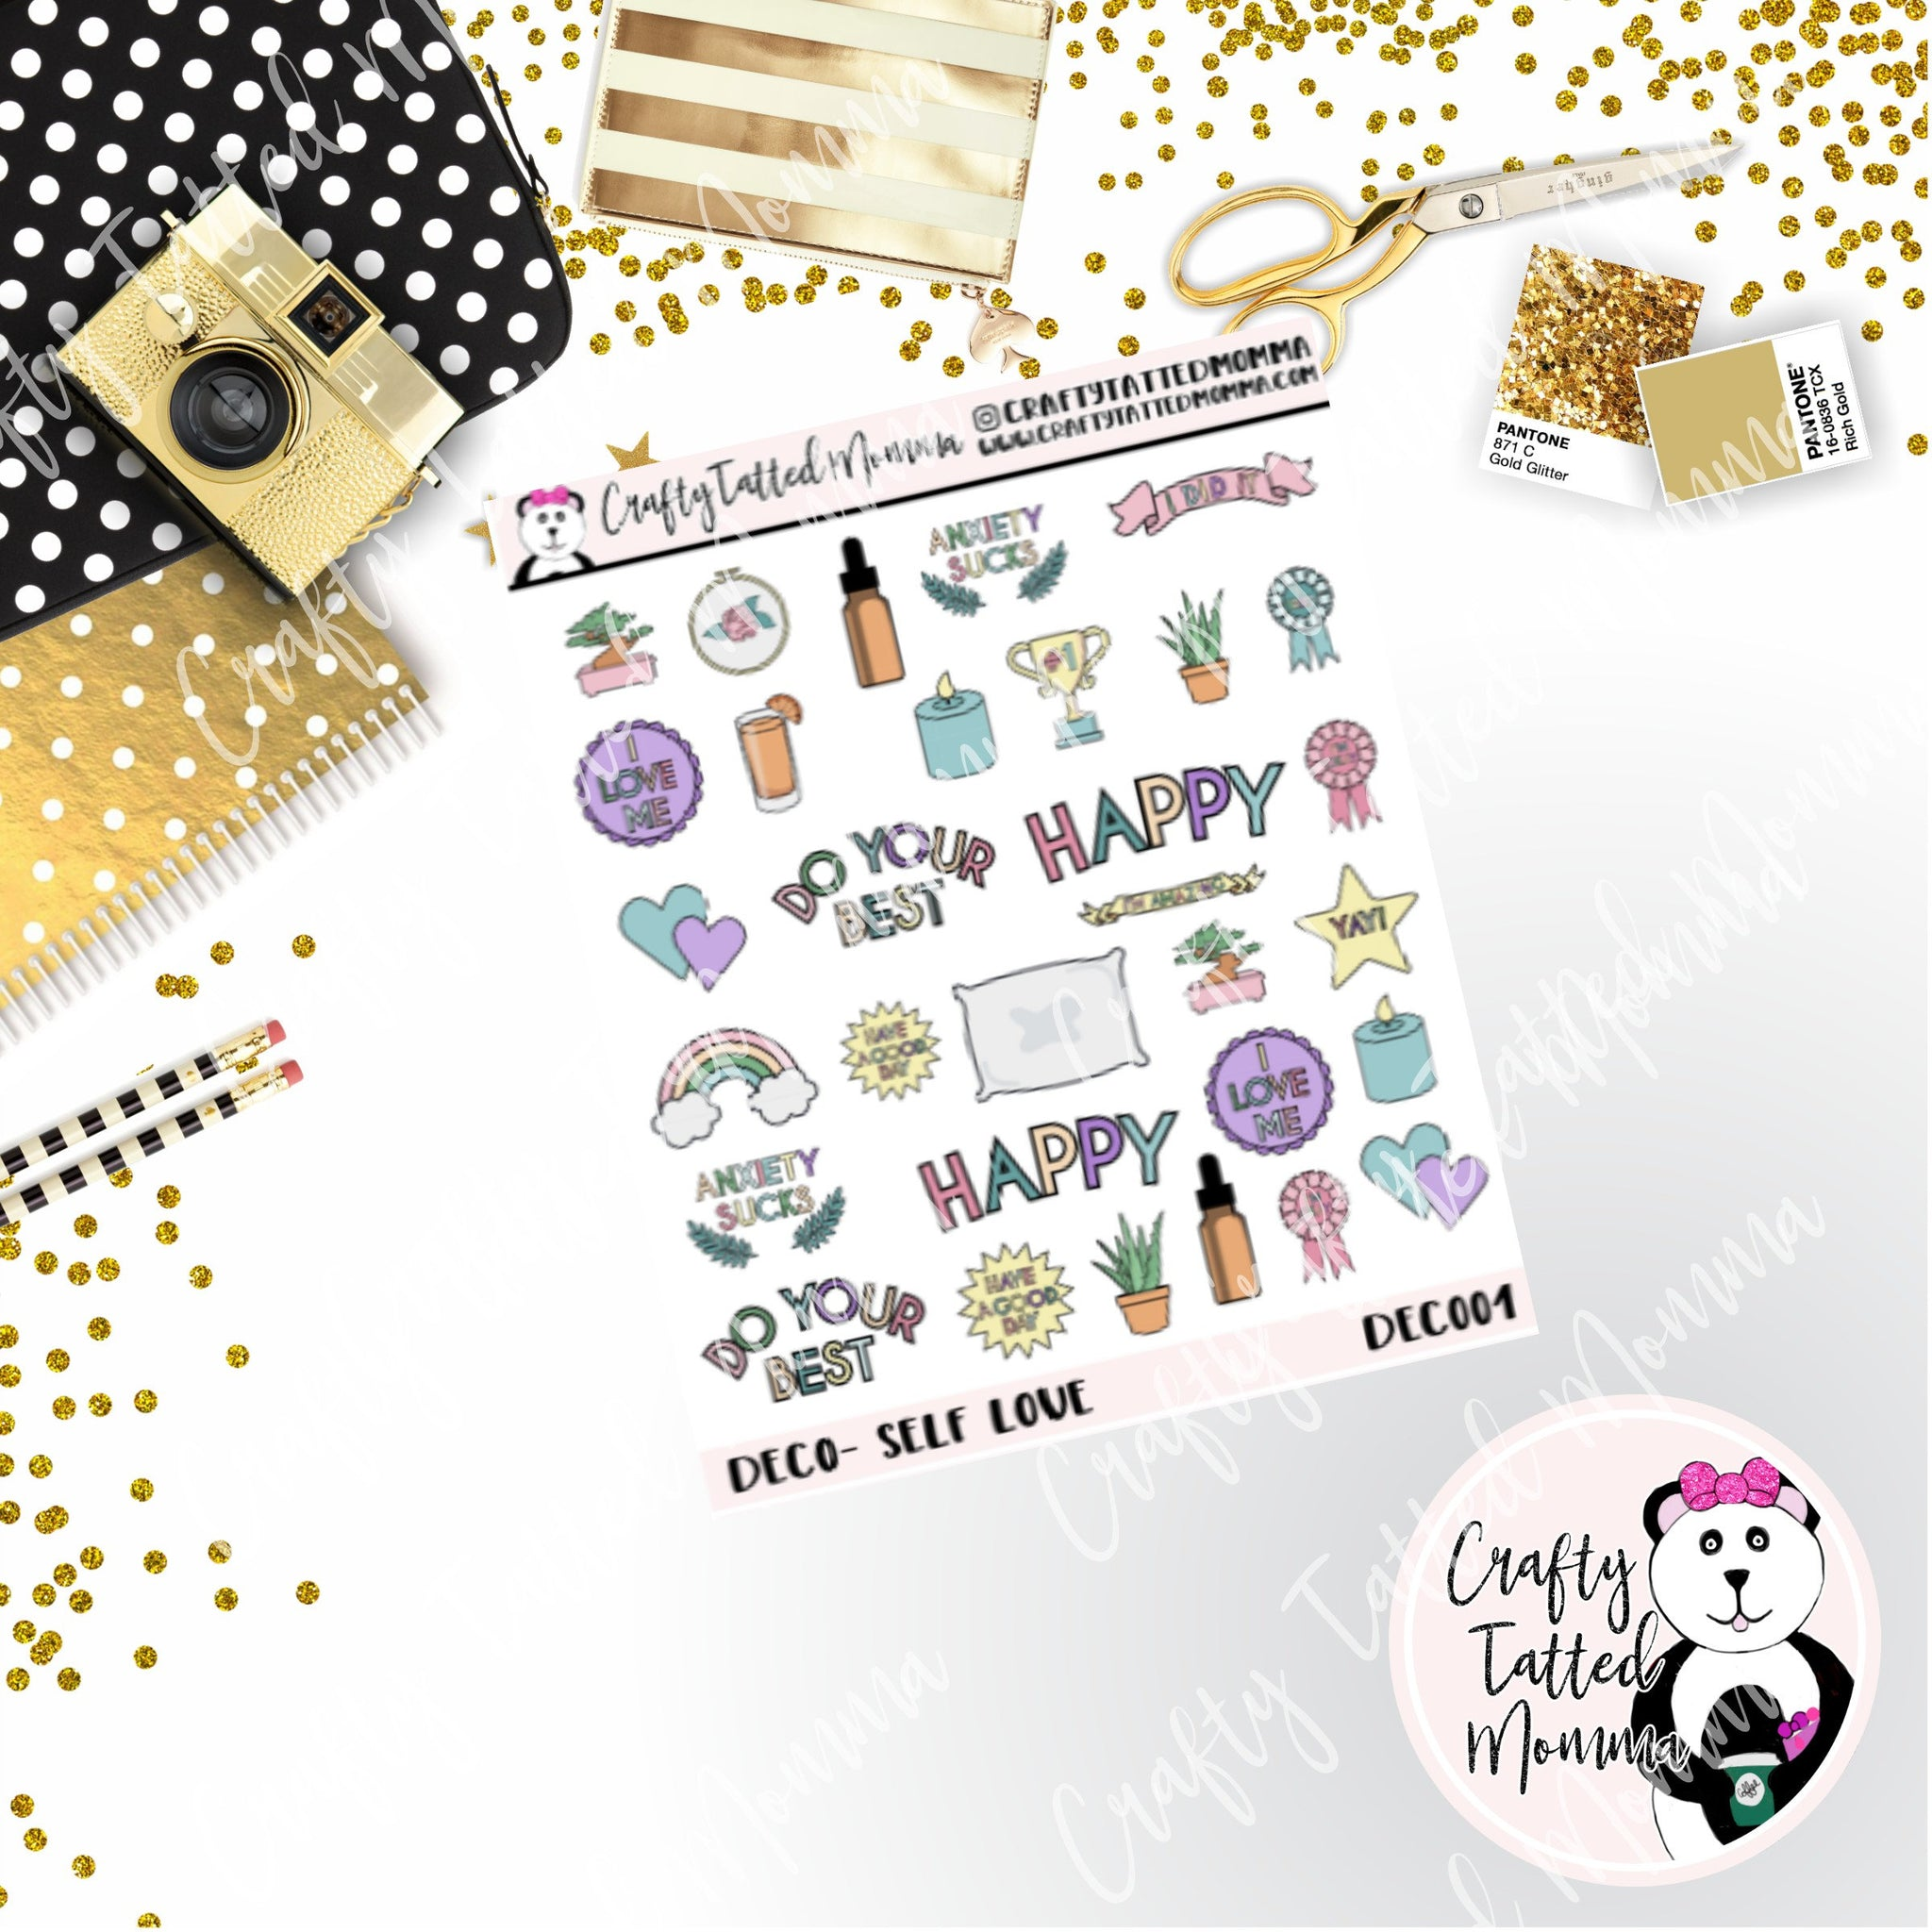 Self Care Deco Planner stickers   Deco Stickers   Planner Stickers   Decorative Stickers   Planner   Fits Any Planner